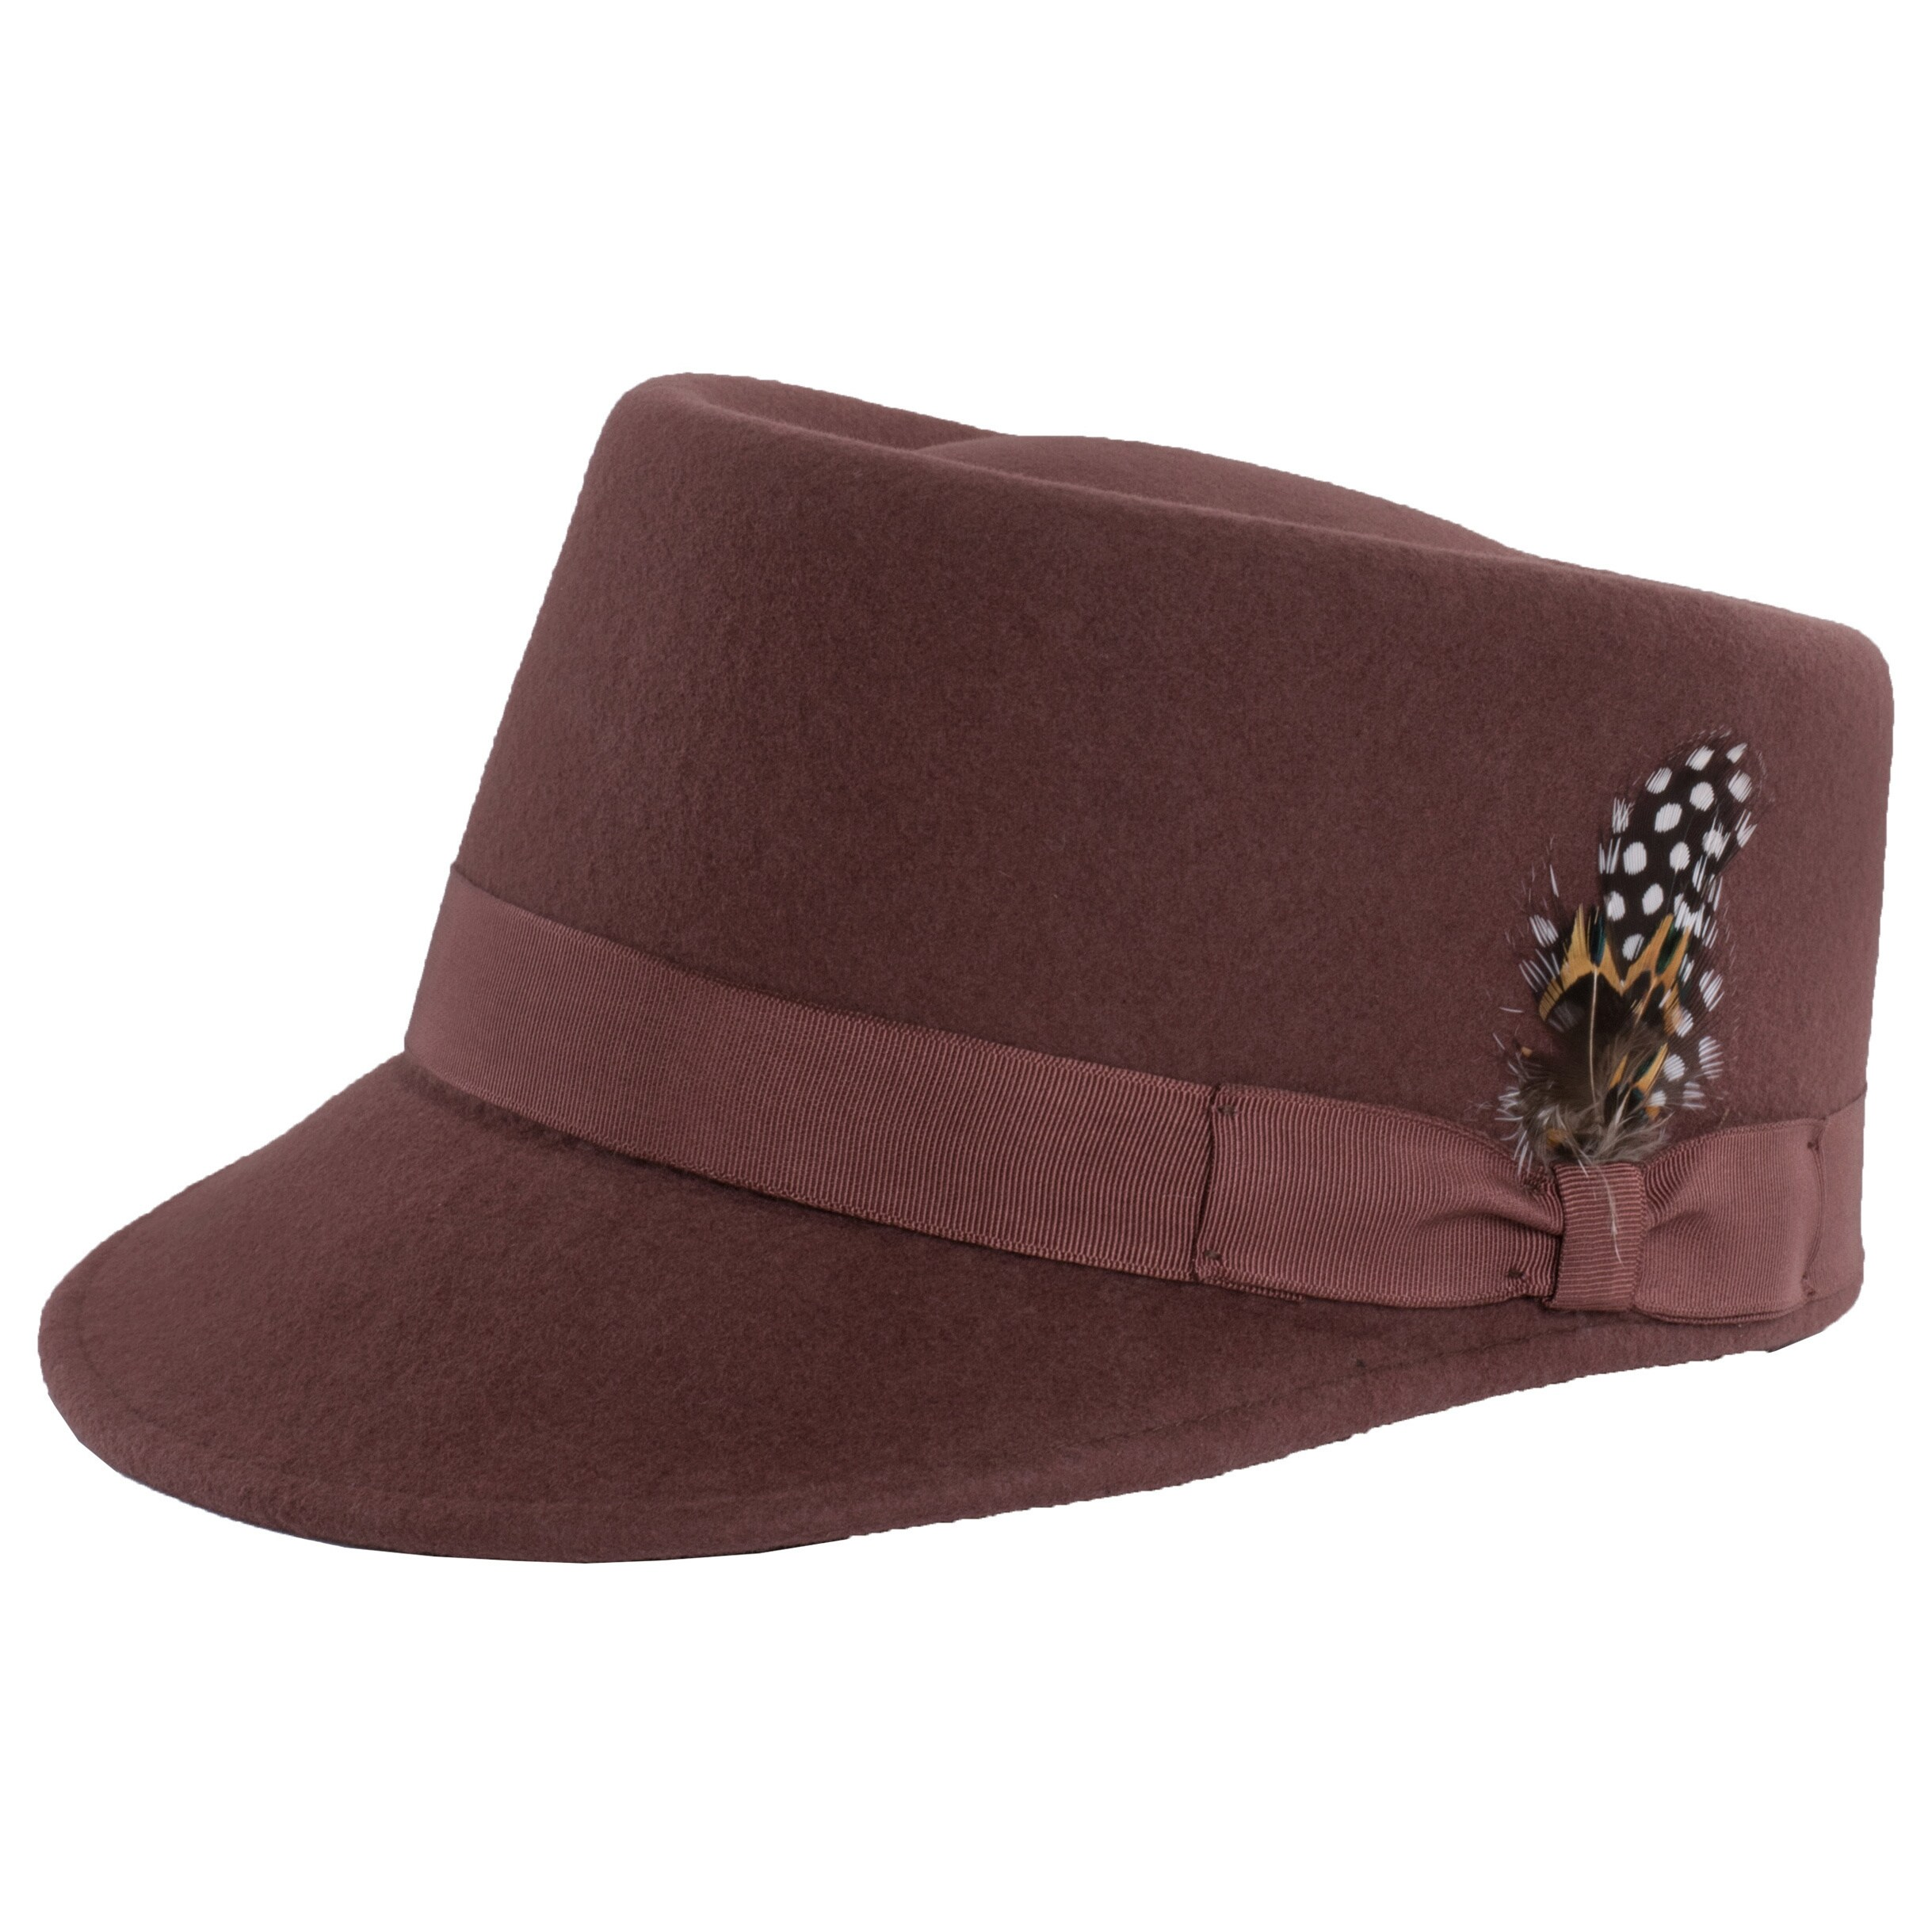 Shop Ferrecci Modern Conductor Train Engineer Hat with Feather - Free  Shipping On Orders Over  45 - Overstock - 16589228 edcfec893e5a